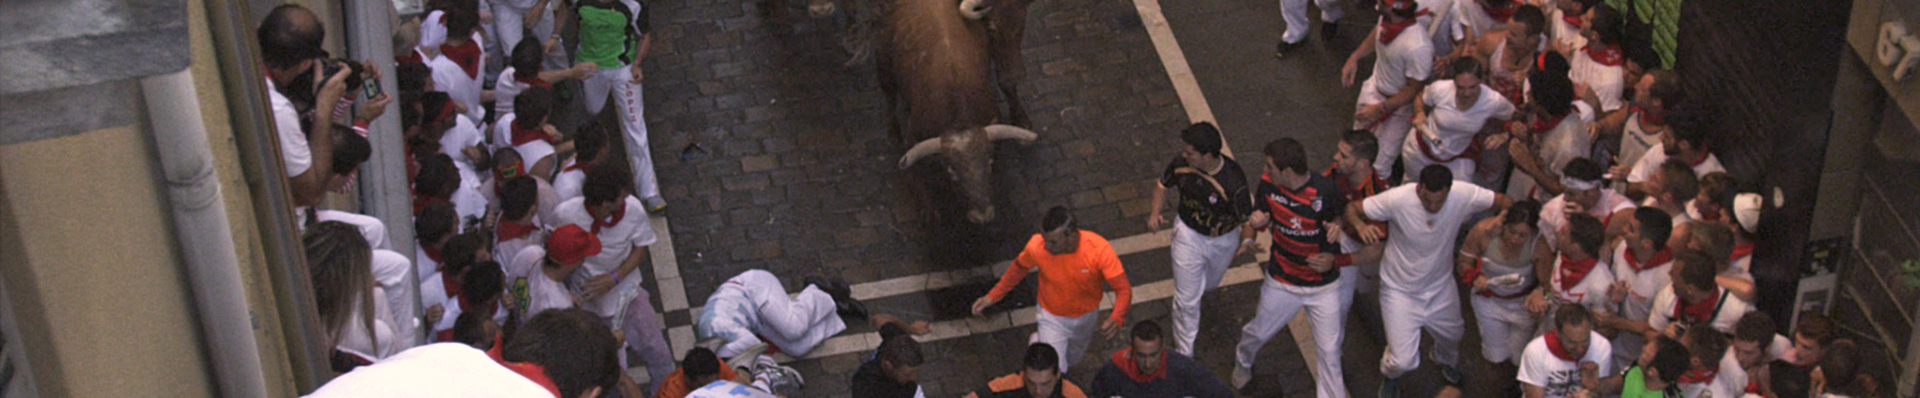 How to participate in the Running of the Bulls